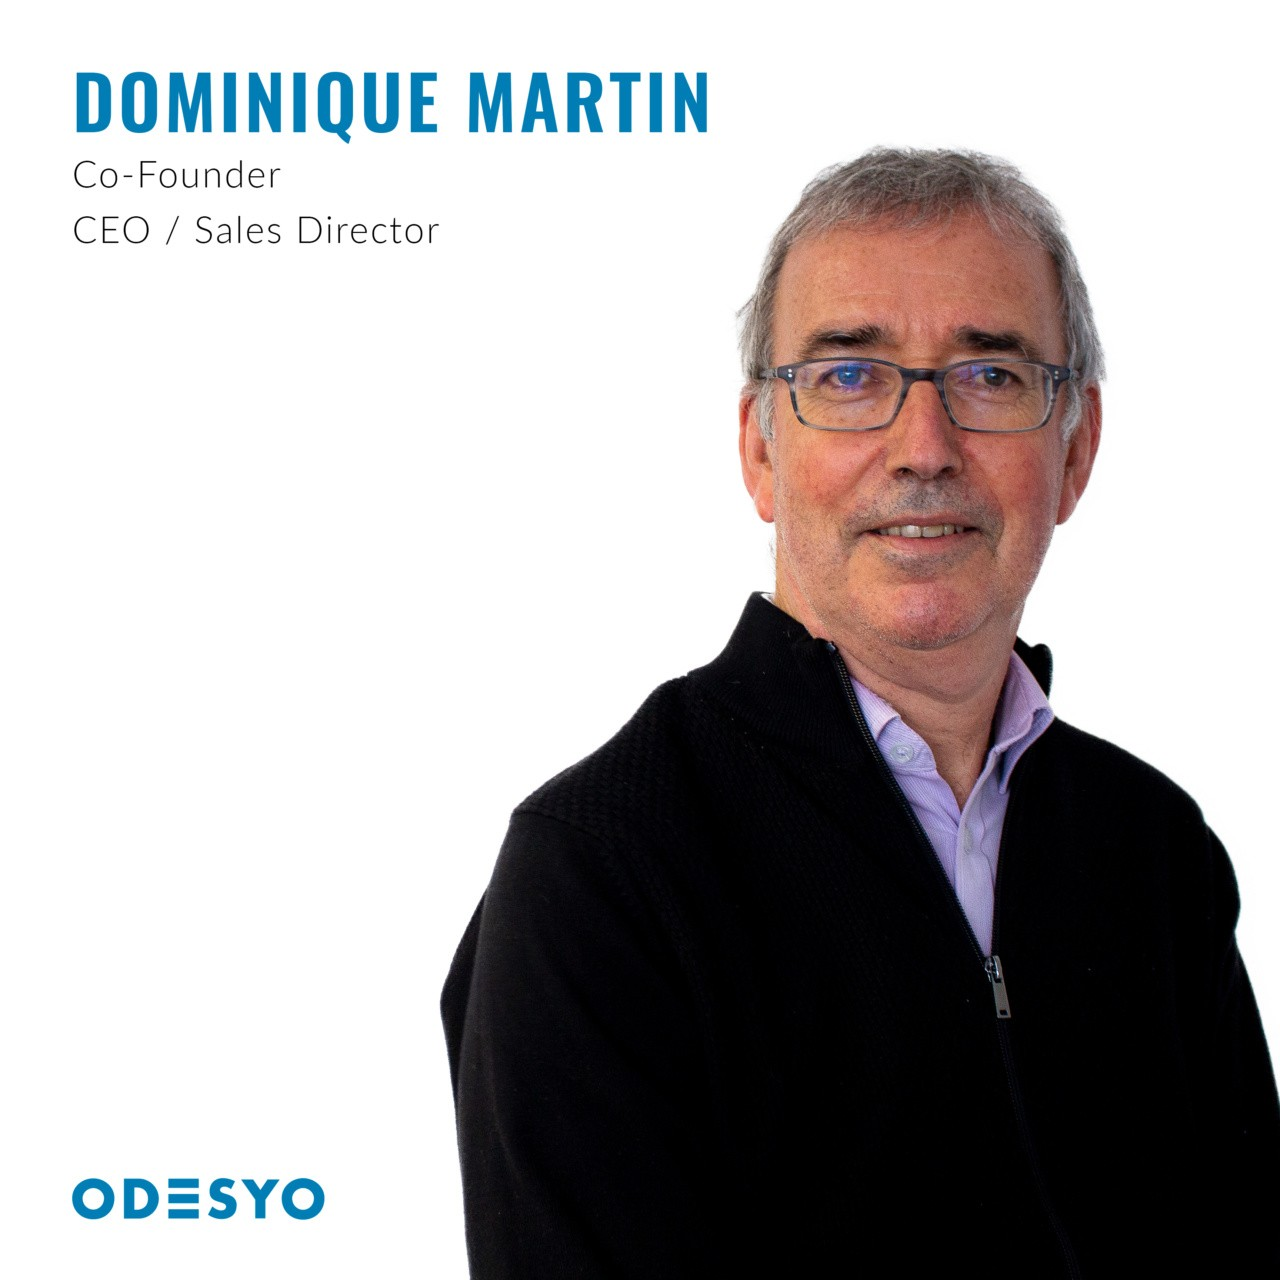 Dominique Martin CEO